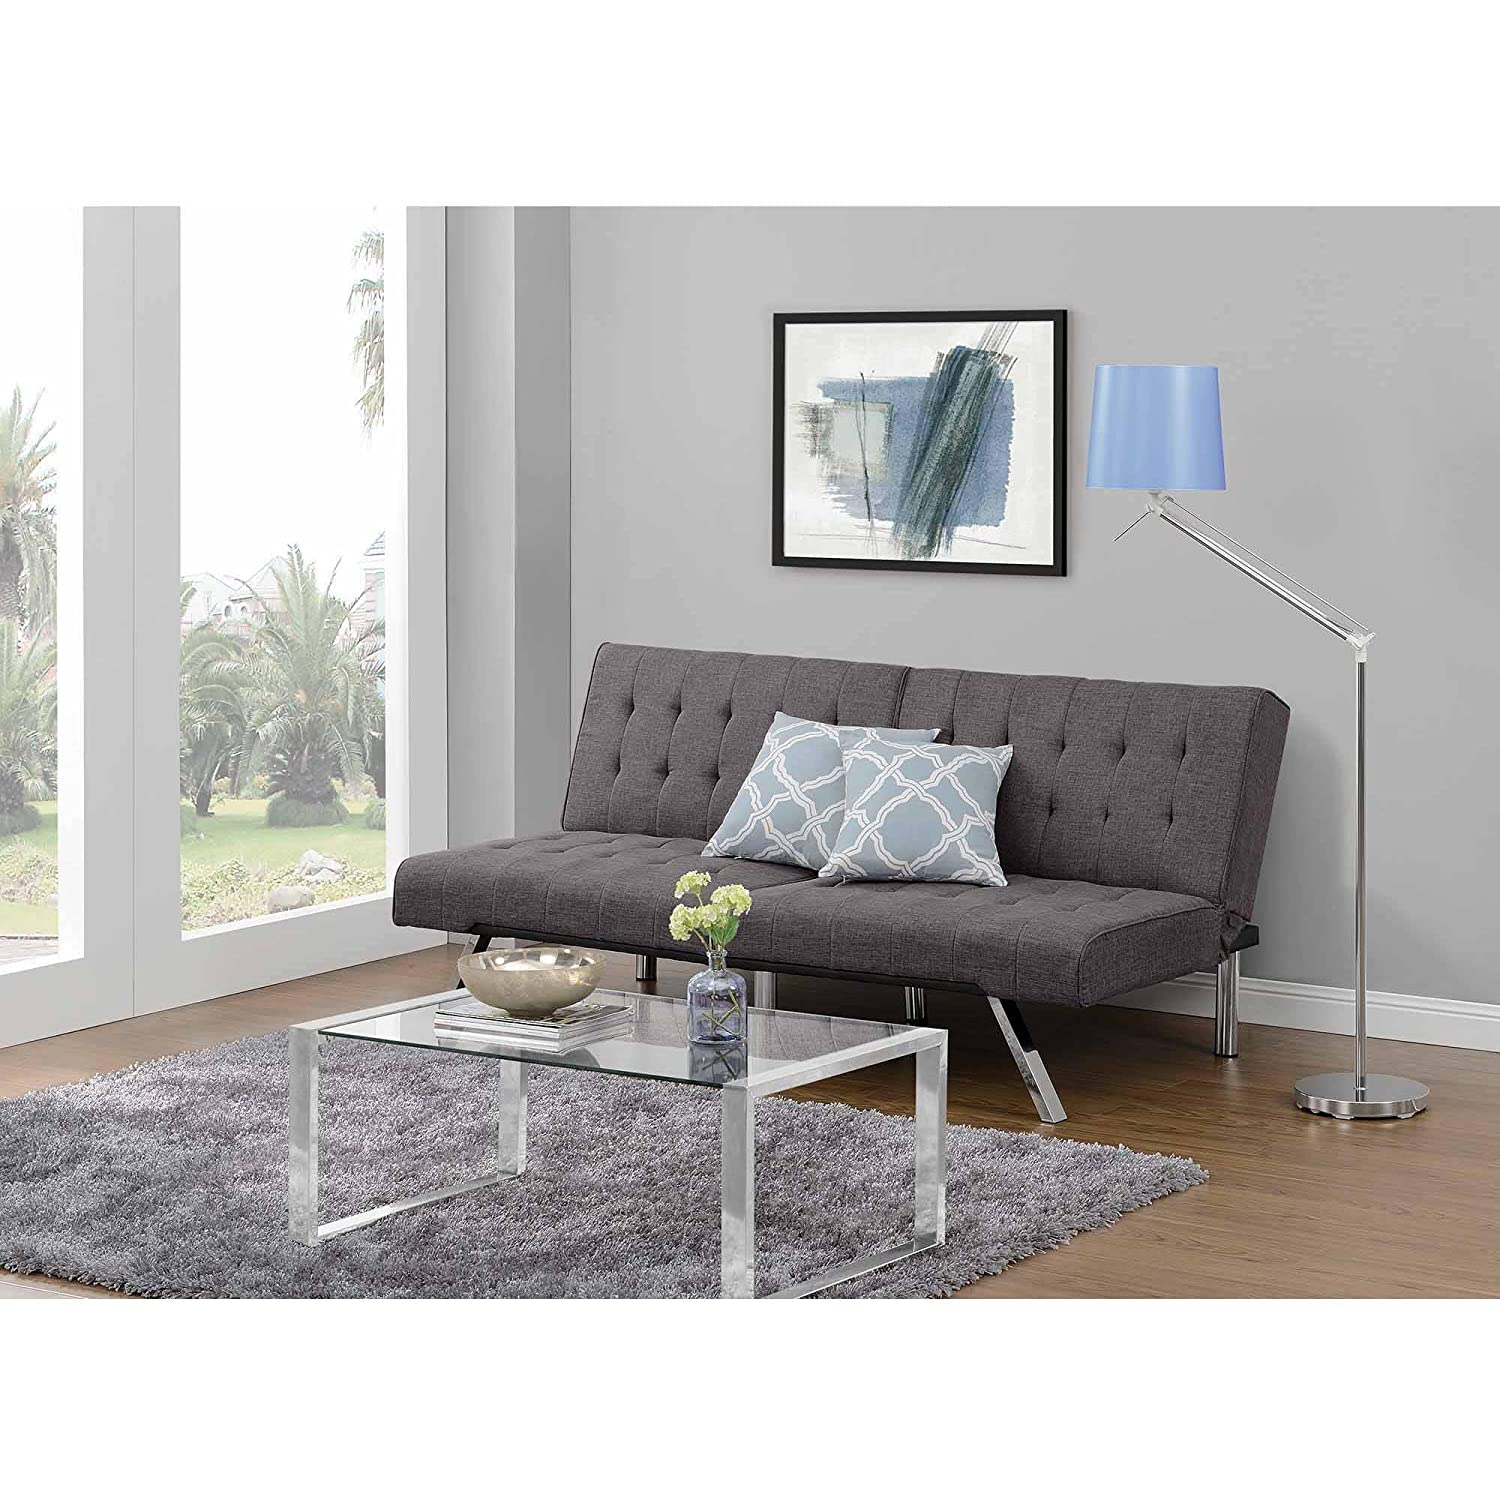 Emily Futon Chaise Lounger (Gray)